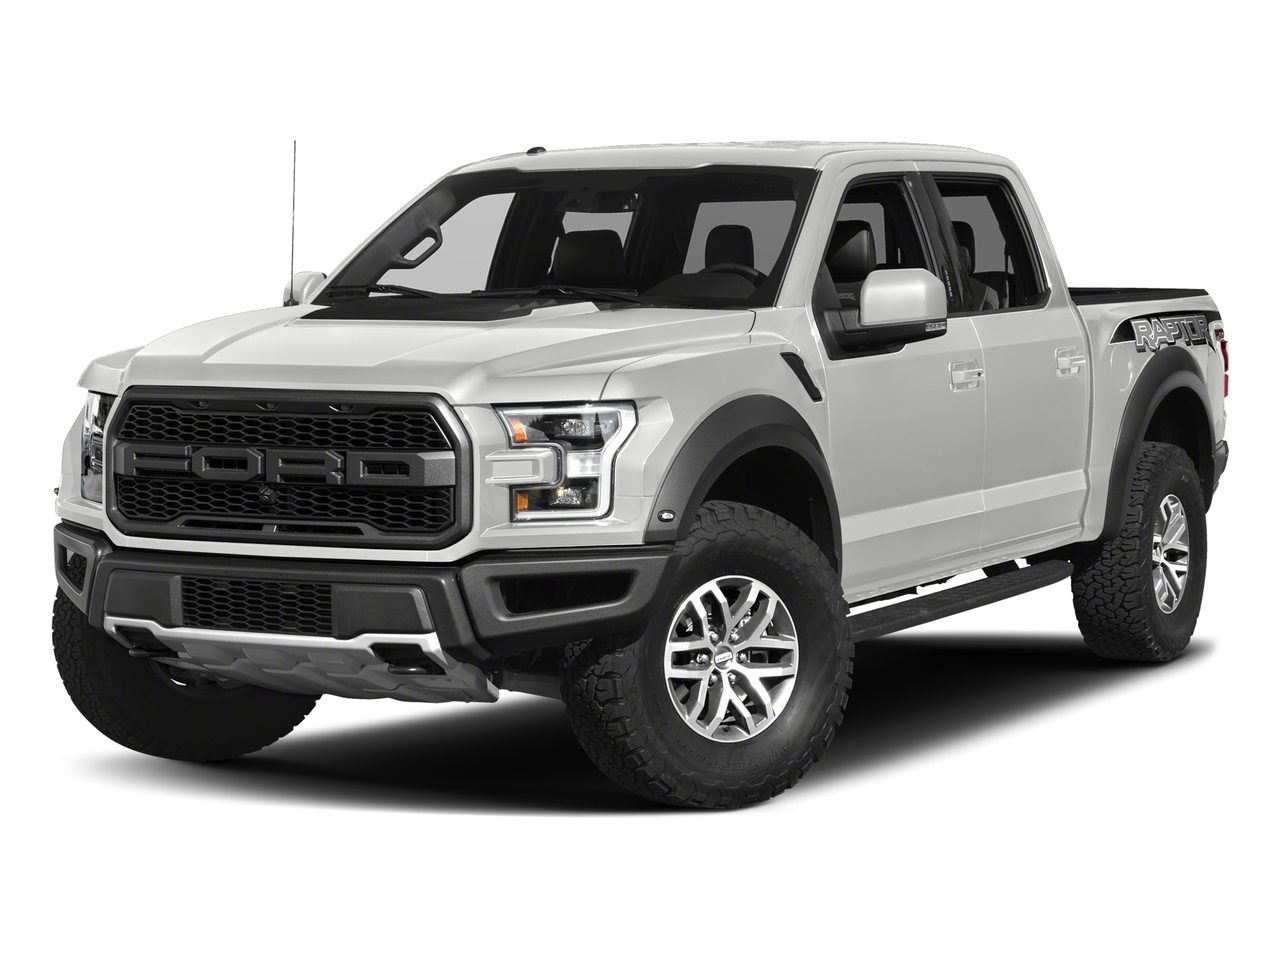 2017 Ford F-150 RAPTOR Crew Cab Pickup Slide